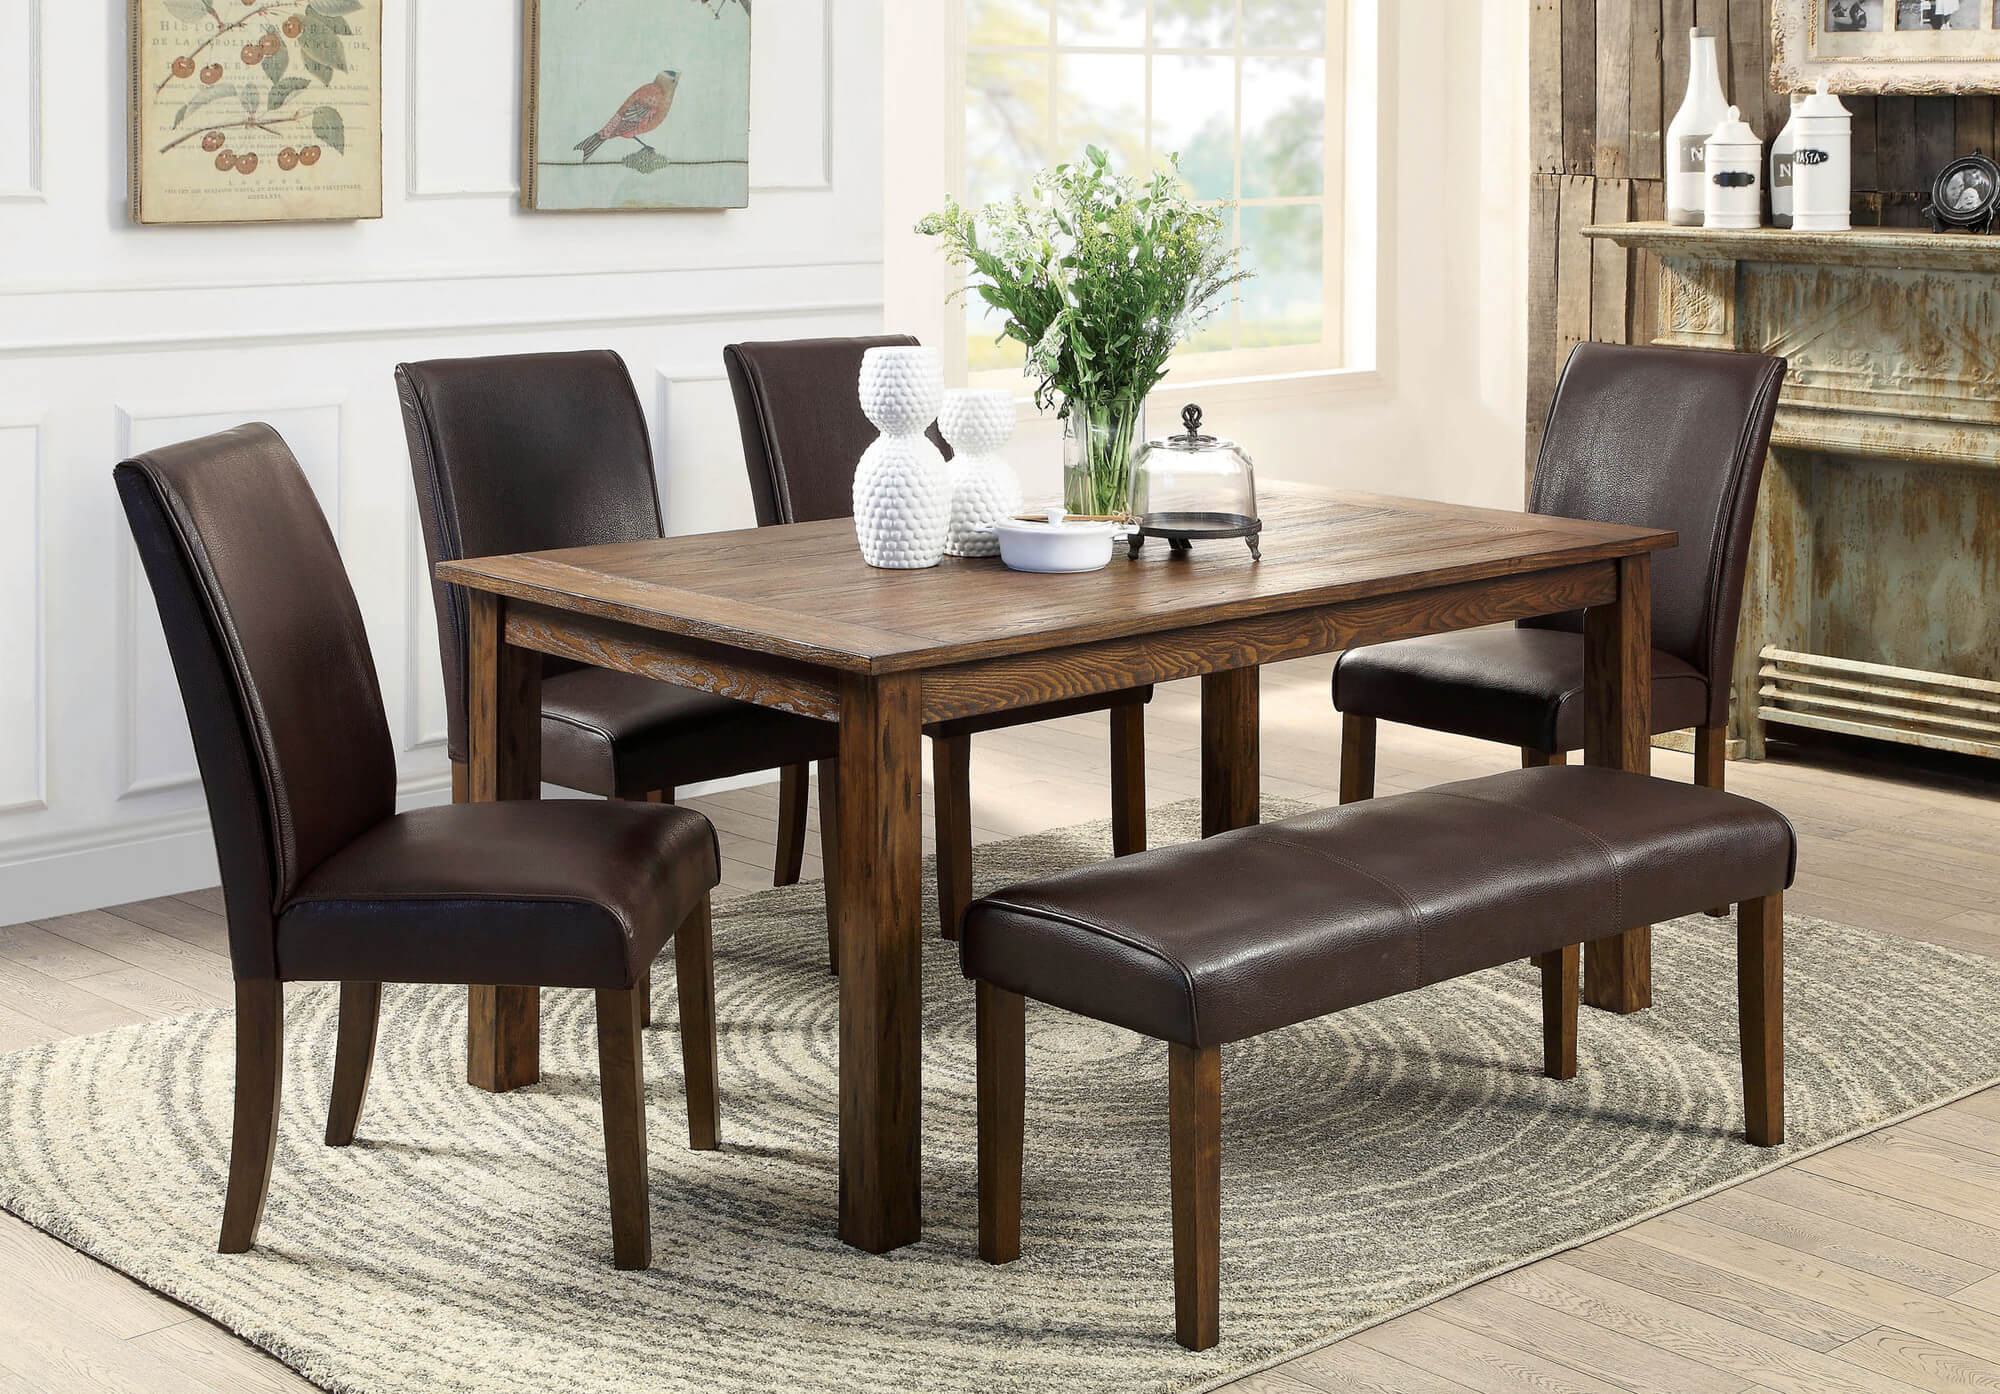 Heres A Rustic Rectangle Dining Table With Fully Cushioned Chairs And Bench This Look Works